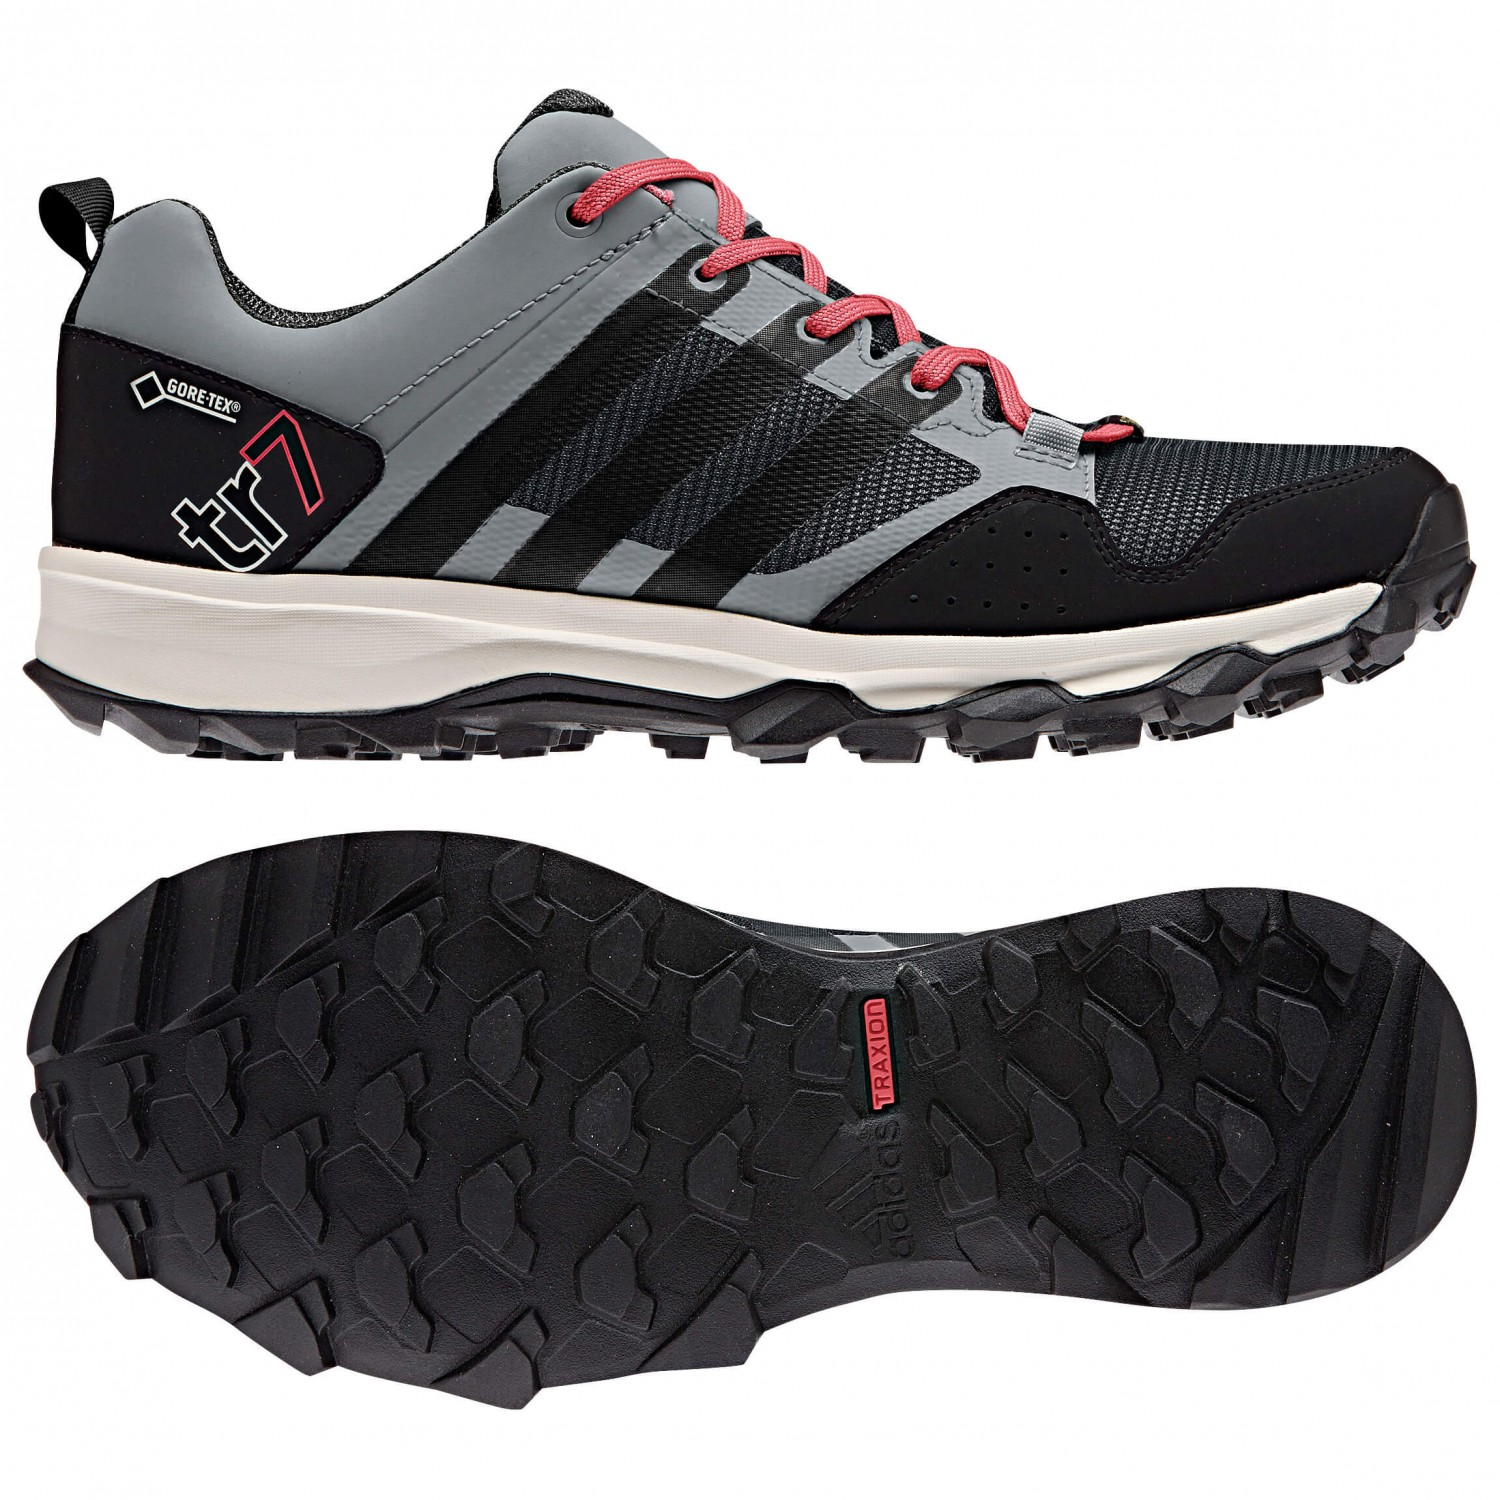 adidas outdoor womens kanadia 7 tr gore-tex trail running shoe